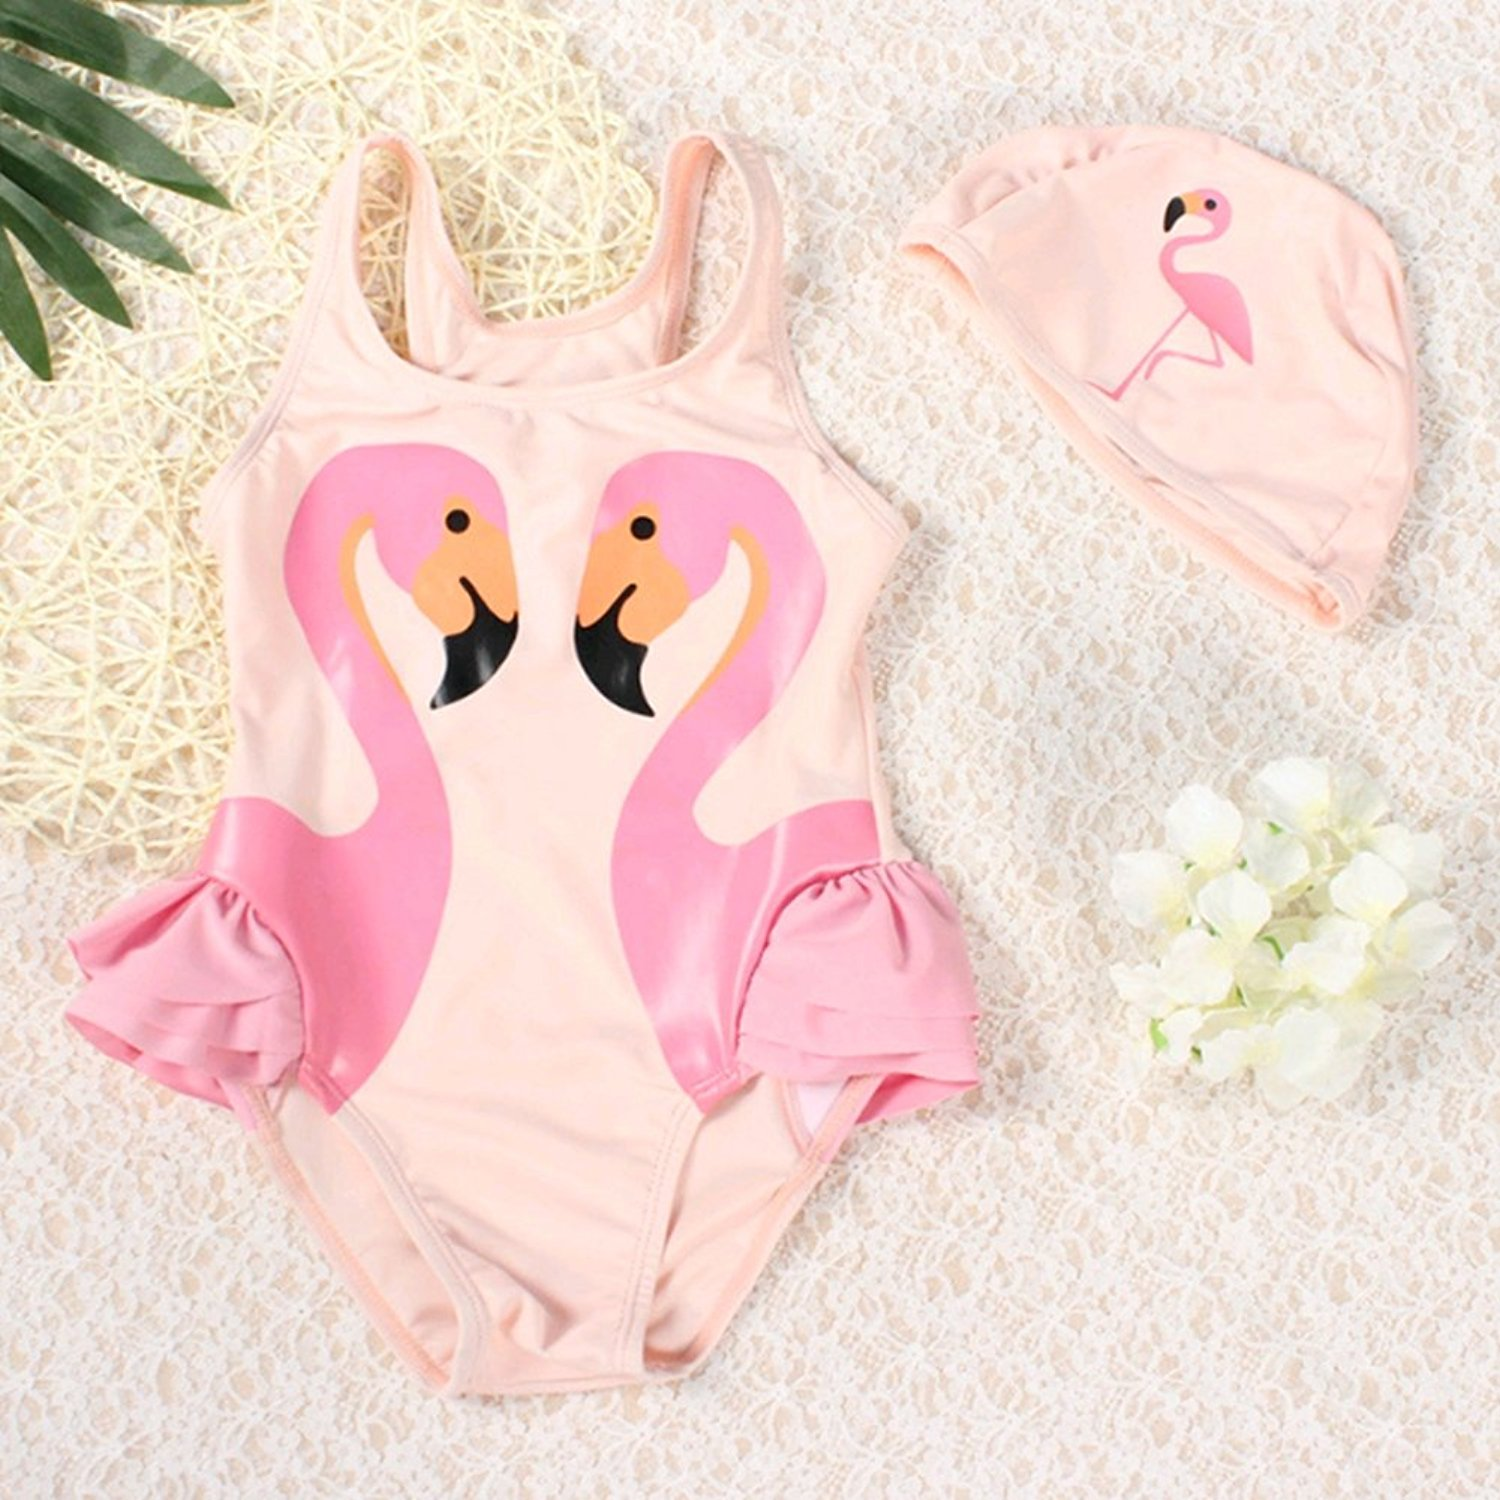 e8b493b6b2665 Get Quotations · BERTERI One-Piece Cute Pink Flamingos Swimsuits with  Swimming Cap Bathing Suits Swimwear Set for